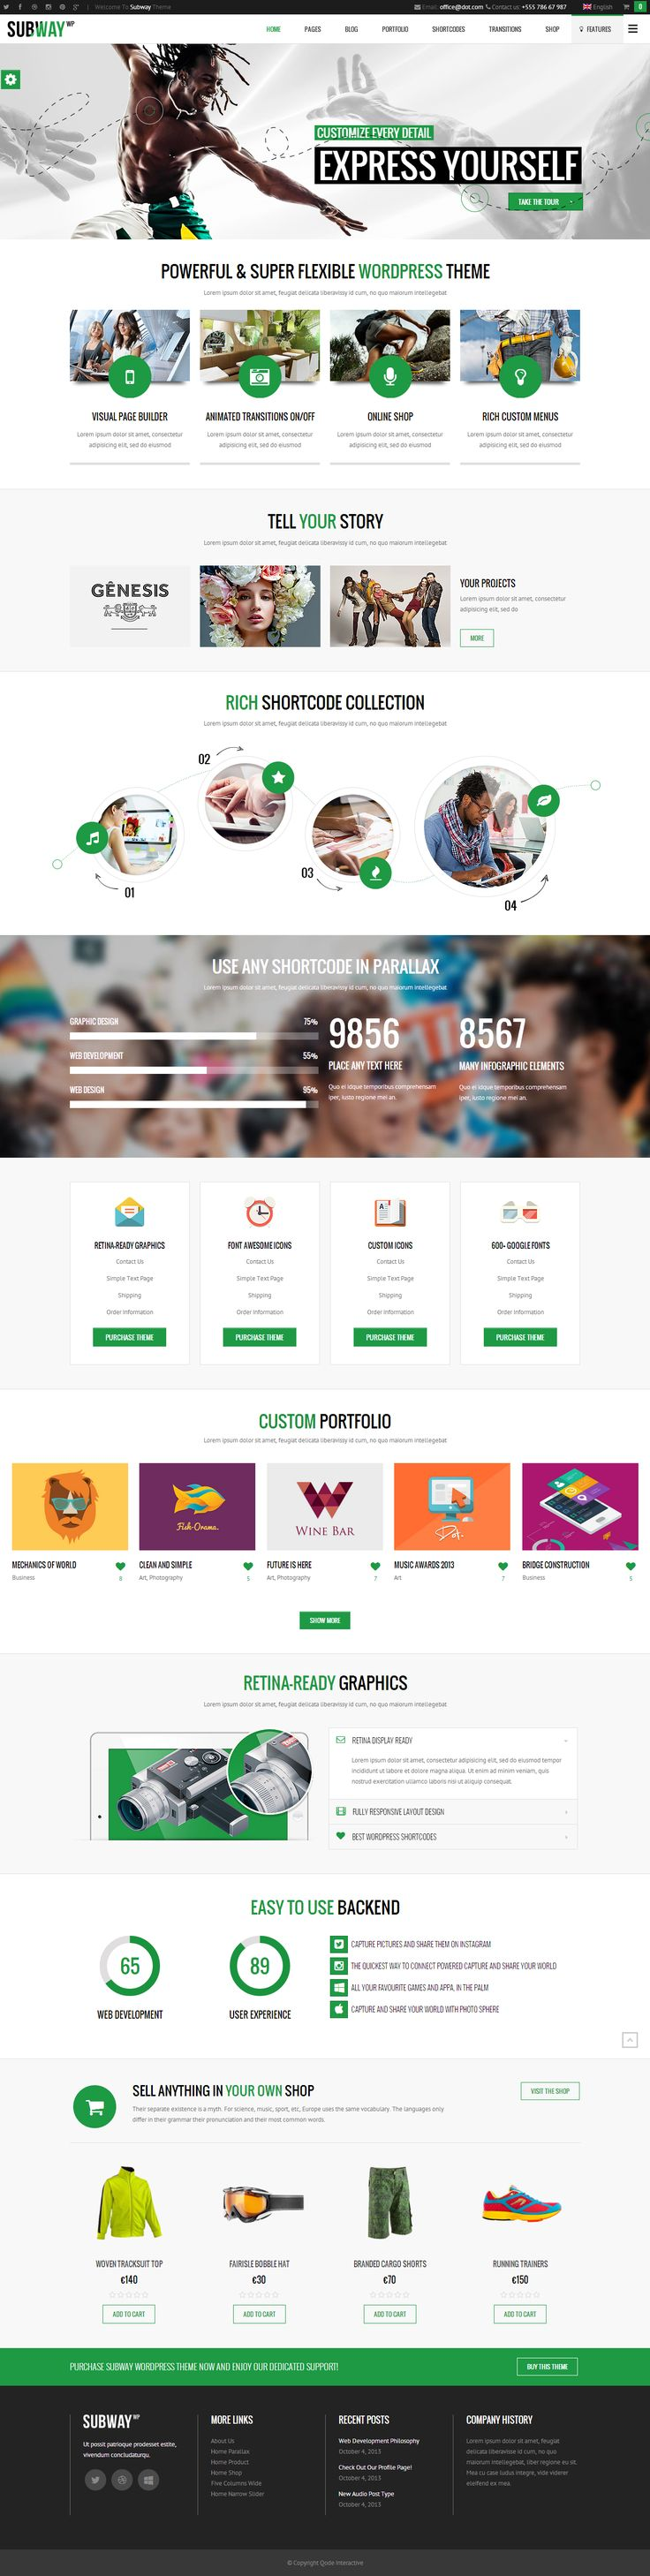 The Most CreAtive Professional WordPress Themes of 2015